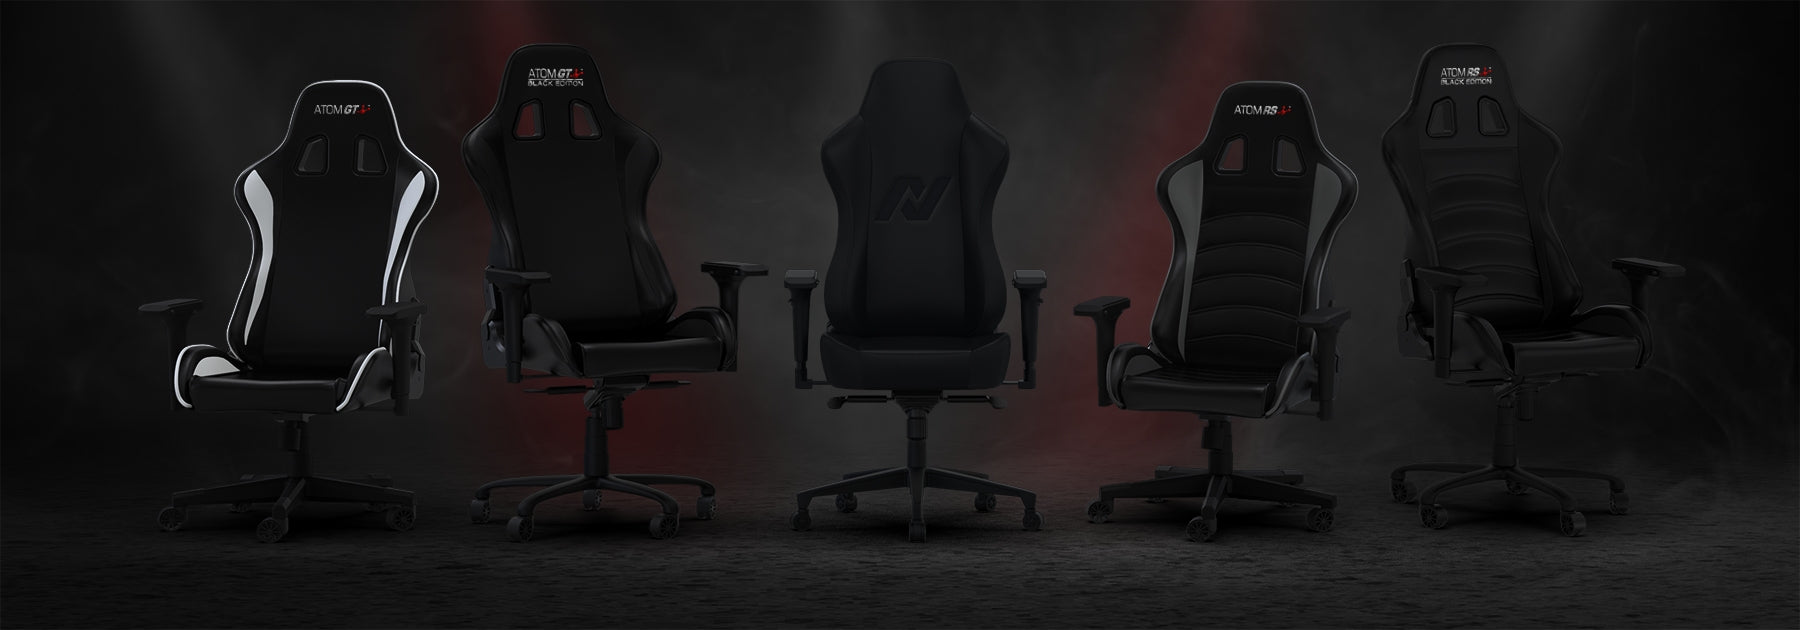 ATOM - PC Office Gaming Chairs Full Range